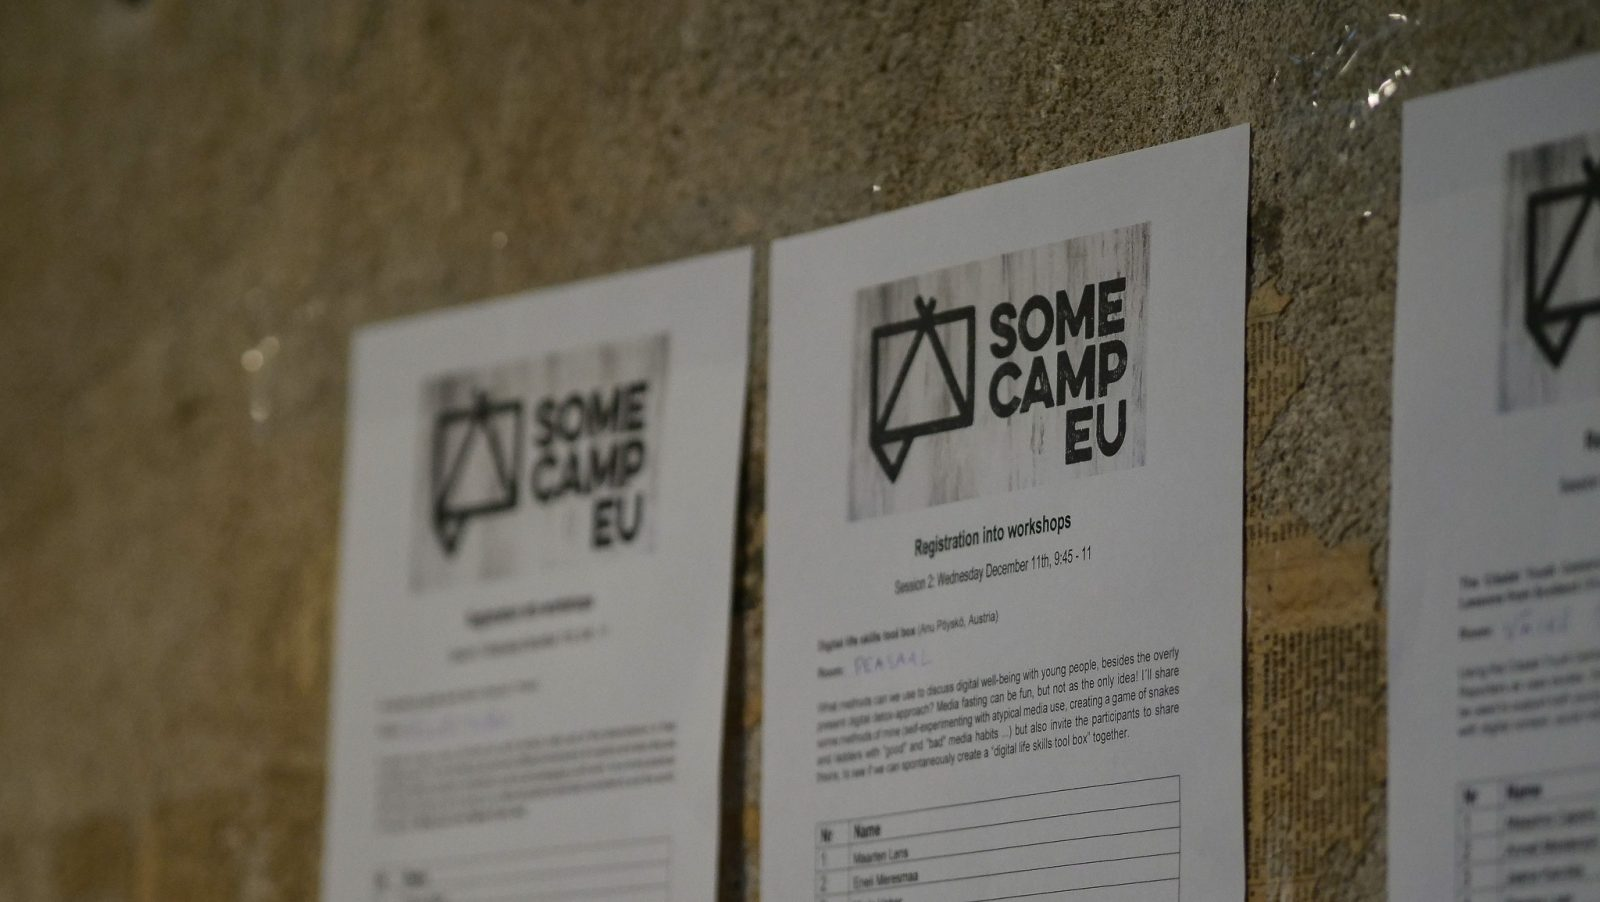 photo of a registration sheet hanging on the wall at the Somecamp EU event